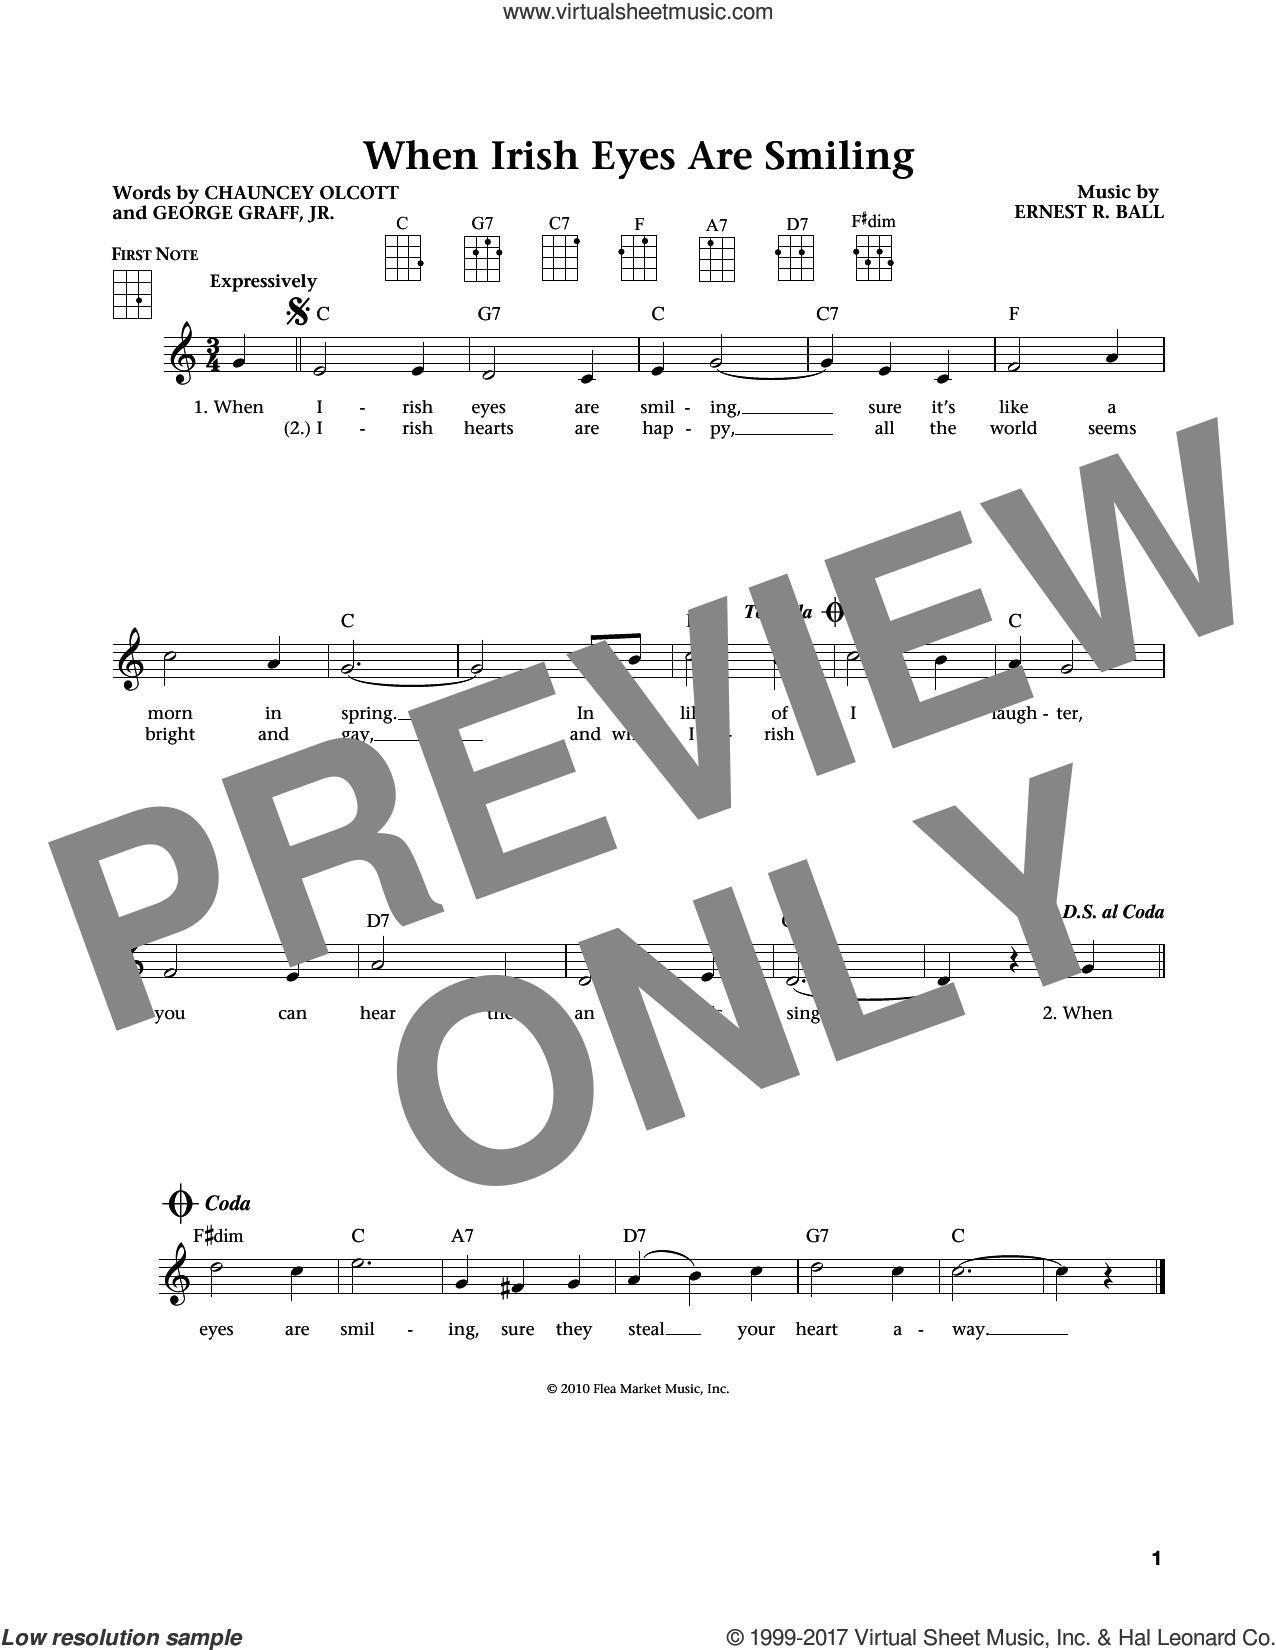 When Irish Eyes Are Smiling (from The Daily Ukulele) (arr. Liz and Jim Beloff) sheet music for ukulele by Chauncey Olcott, Jim Beloff, Liz Beloff, Ernest R. Ball and George Graff Jr., intermediate skill level